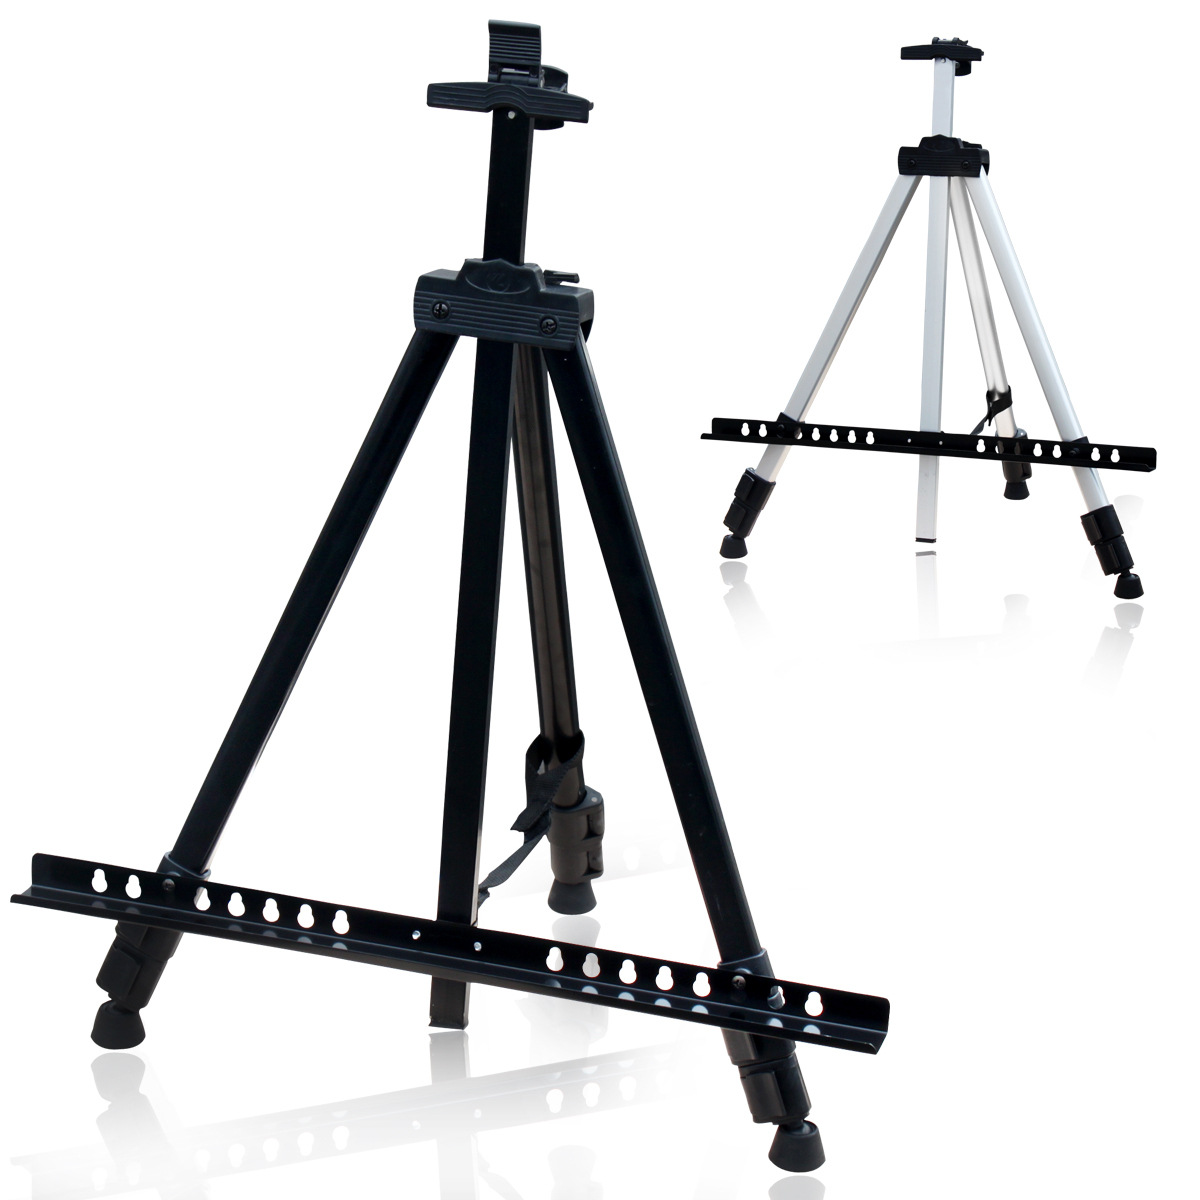 1pcs White Easel Aluminium Alloy Folding blackboard holder Frame Artist Adjustable Tripod Display Shelf With Bag Outdoors Studio aluminium alloy headset stand holder